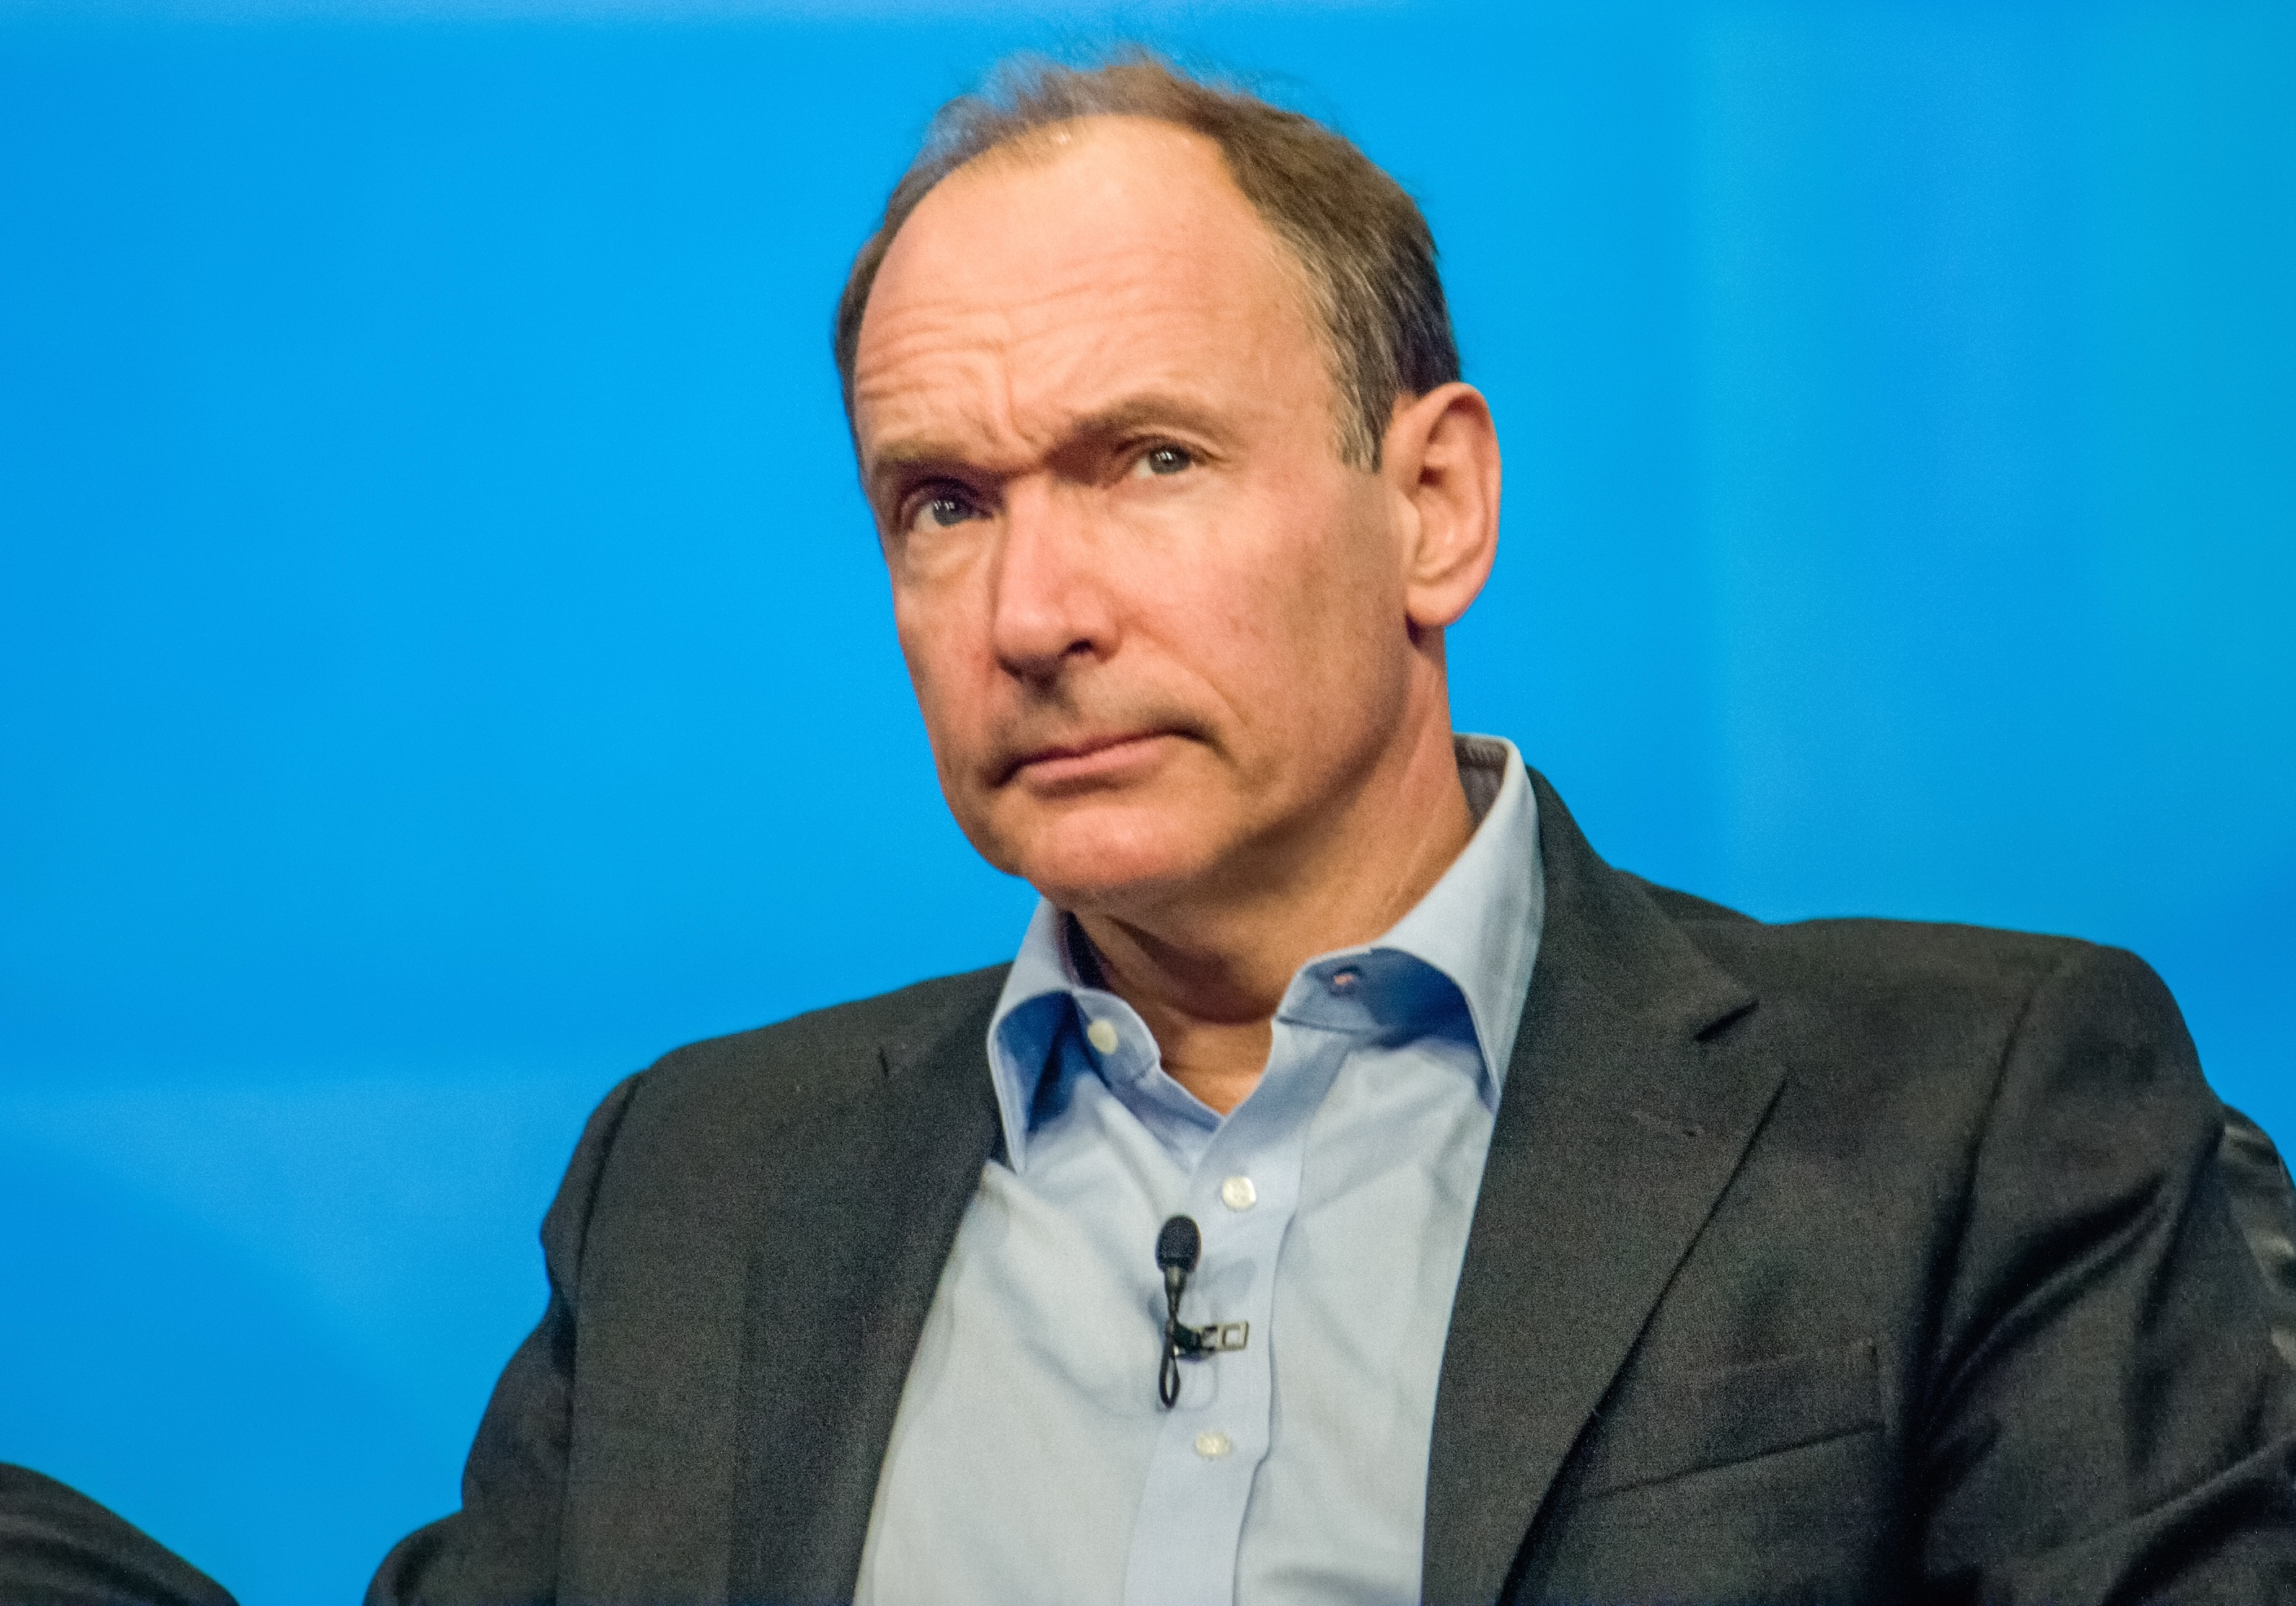 Why Tim Berners-Lee didn't invent the internet